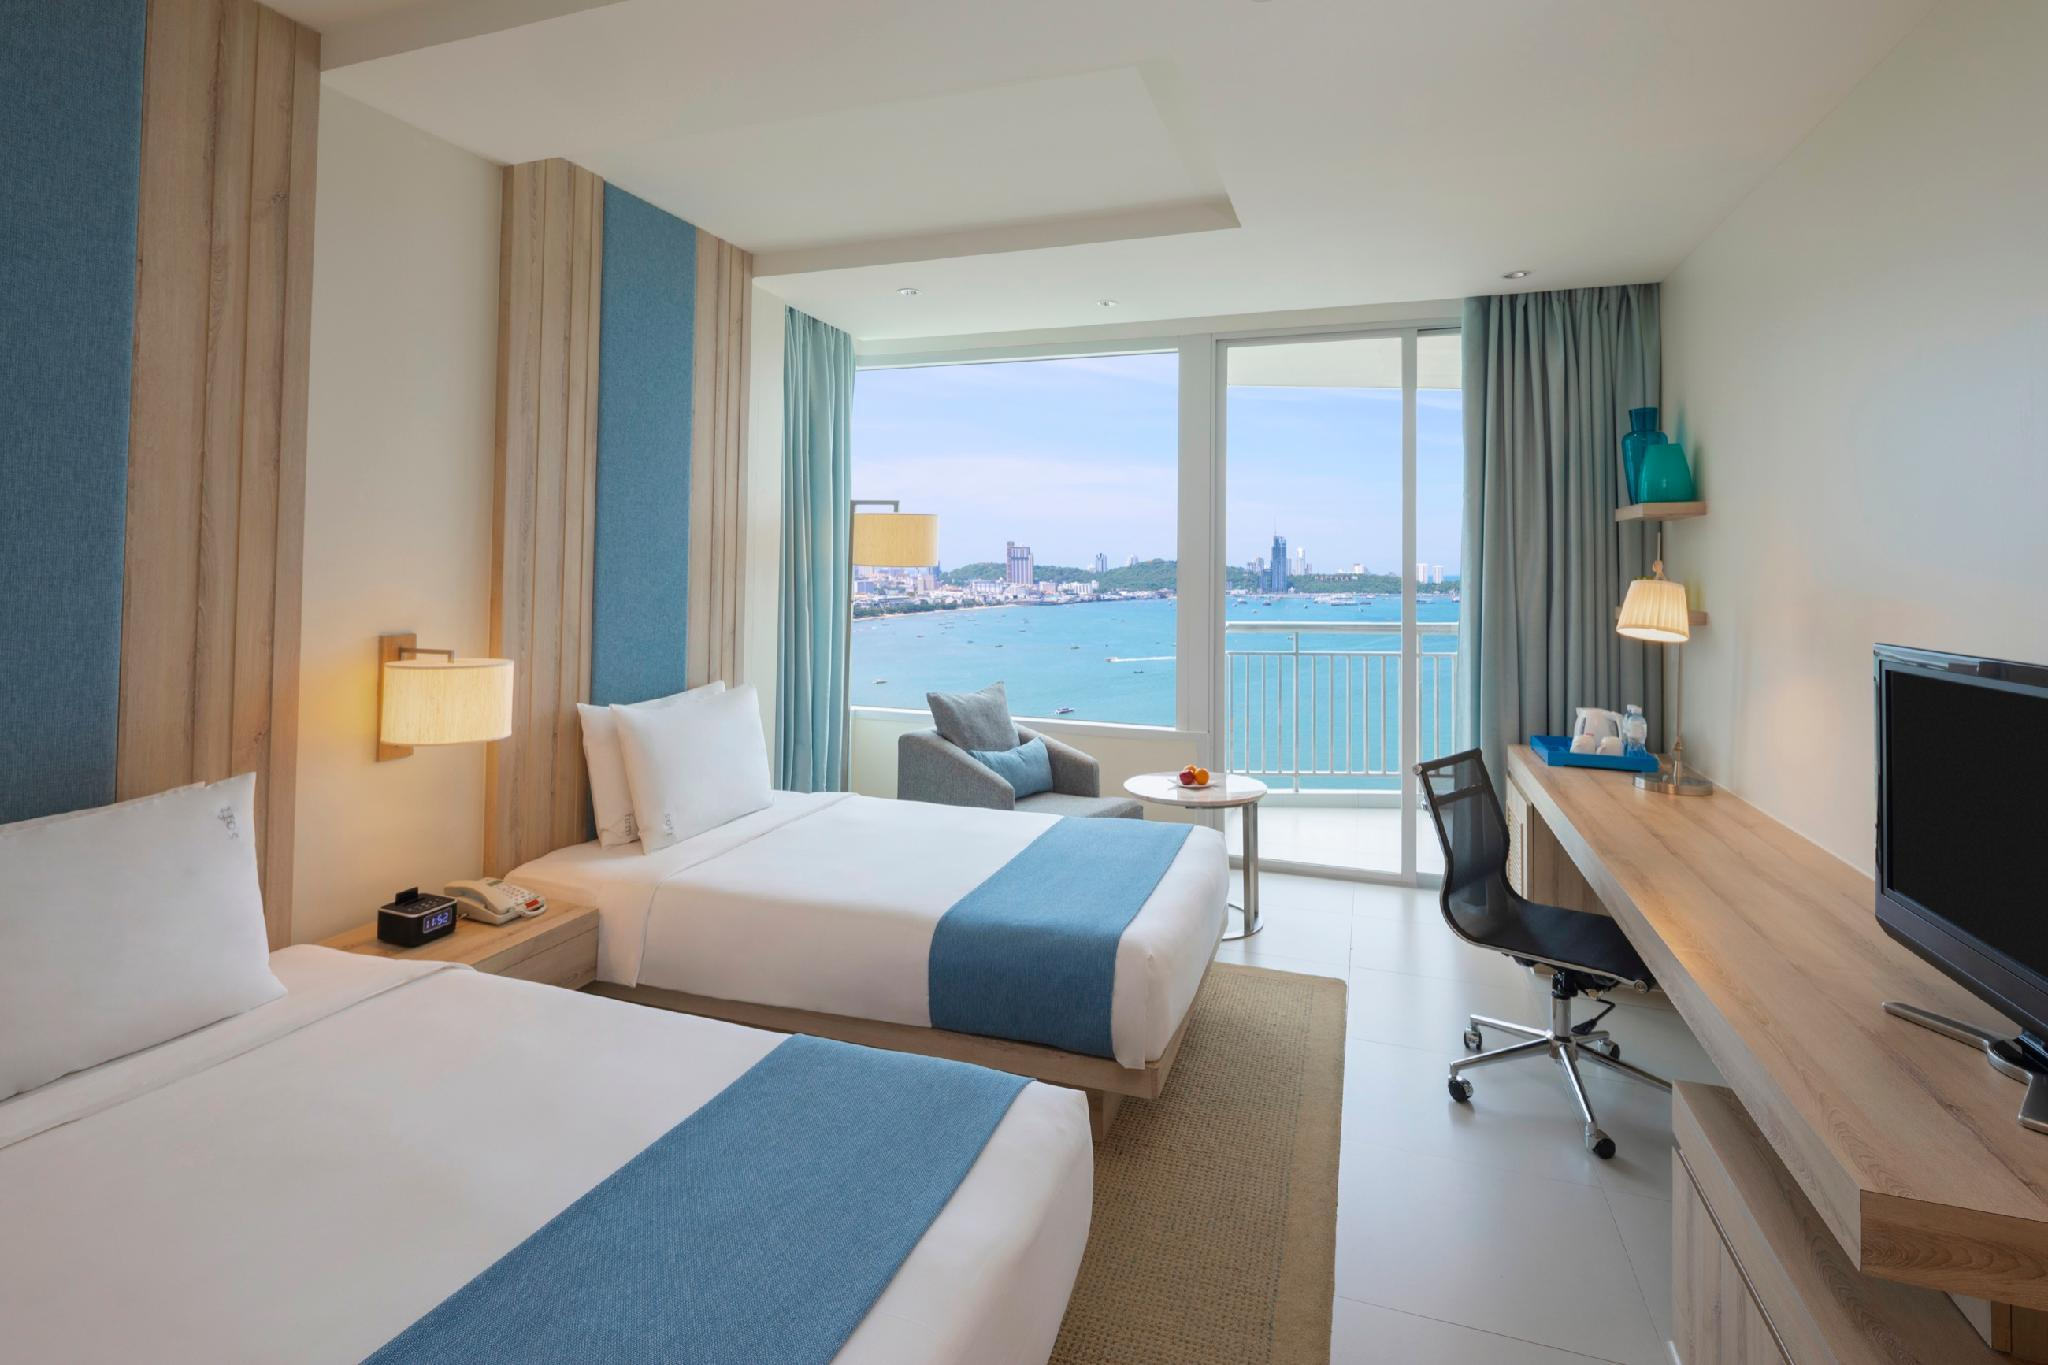 Ocean View Room with 2 Single Beds - Non-Smoking (2 Single Beds Ocean View Non-Smoking)